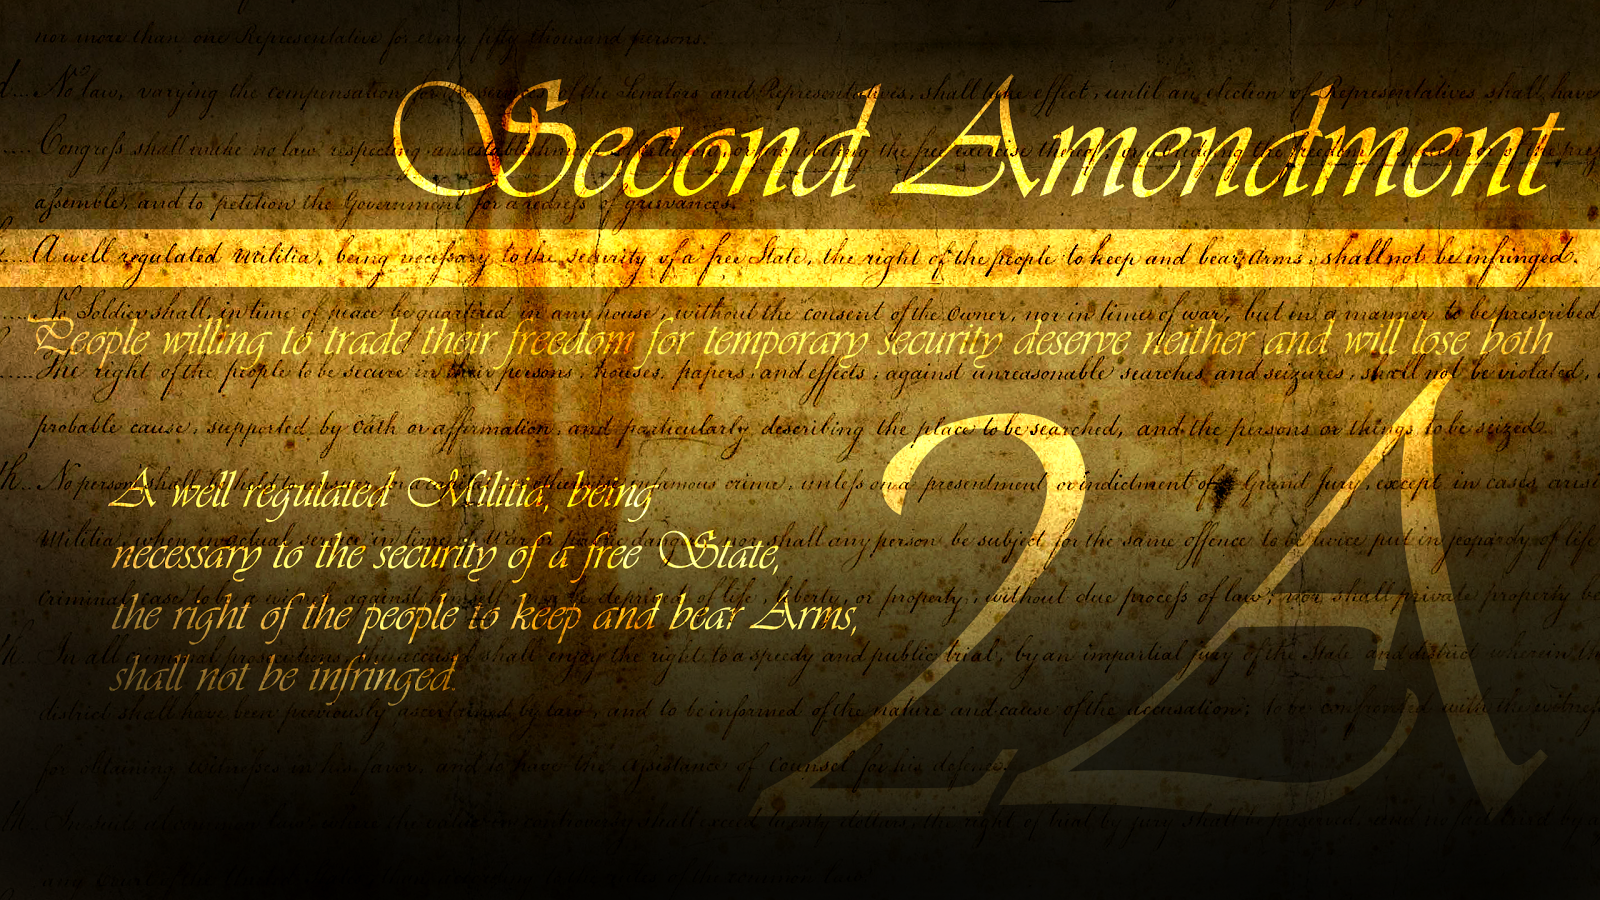 the first and second amendment Note: the following text is a transcription of the first ten amendments to the constitution in their original form these amendments were ratified december 15, 1791, and form what is known as the bill of rights  amendment xii - passed by congress december 9, 1803 ratified june 15, 1804.